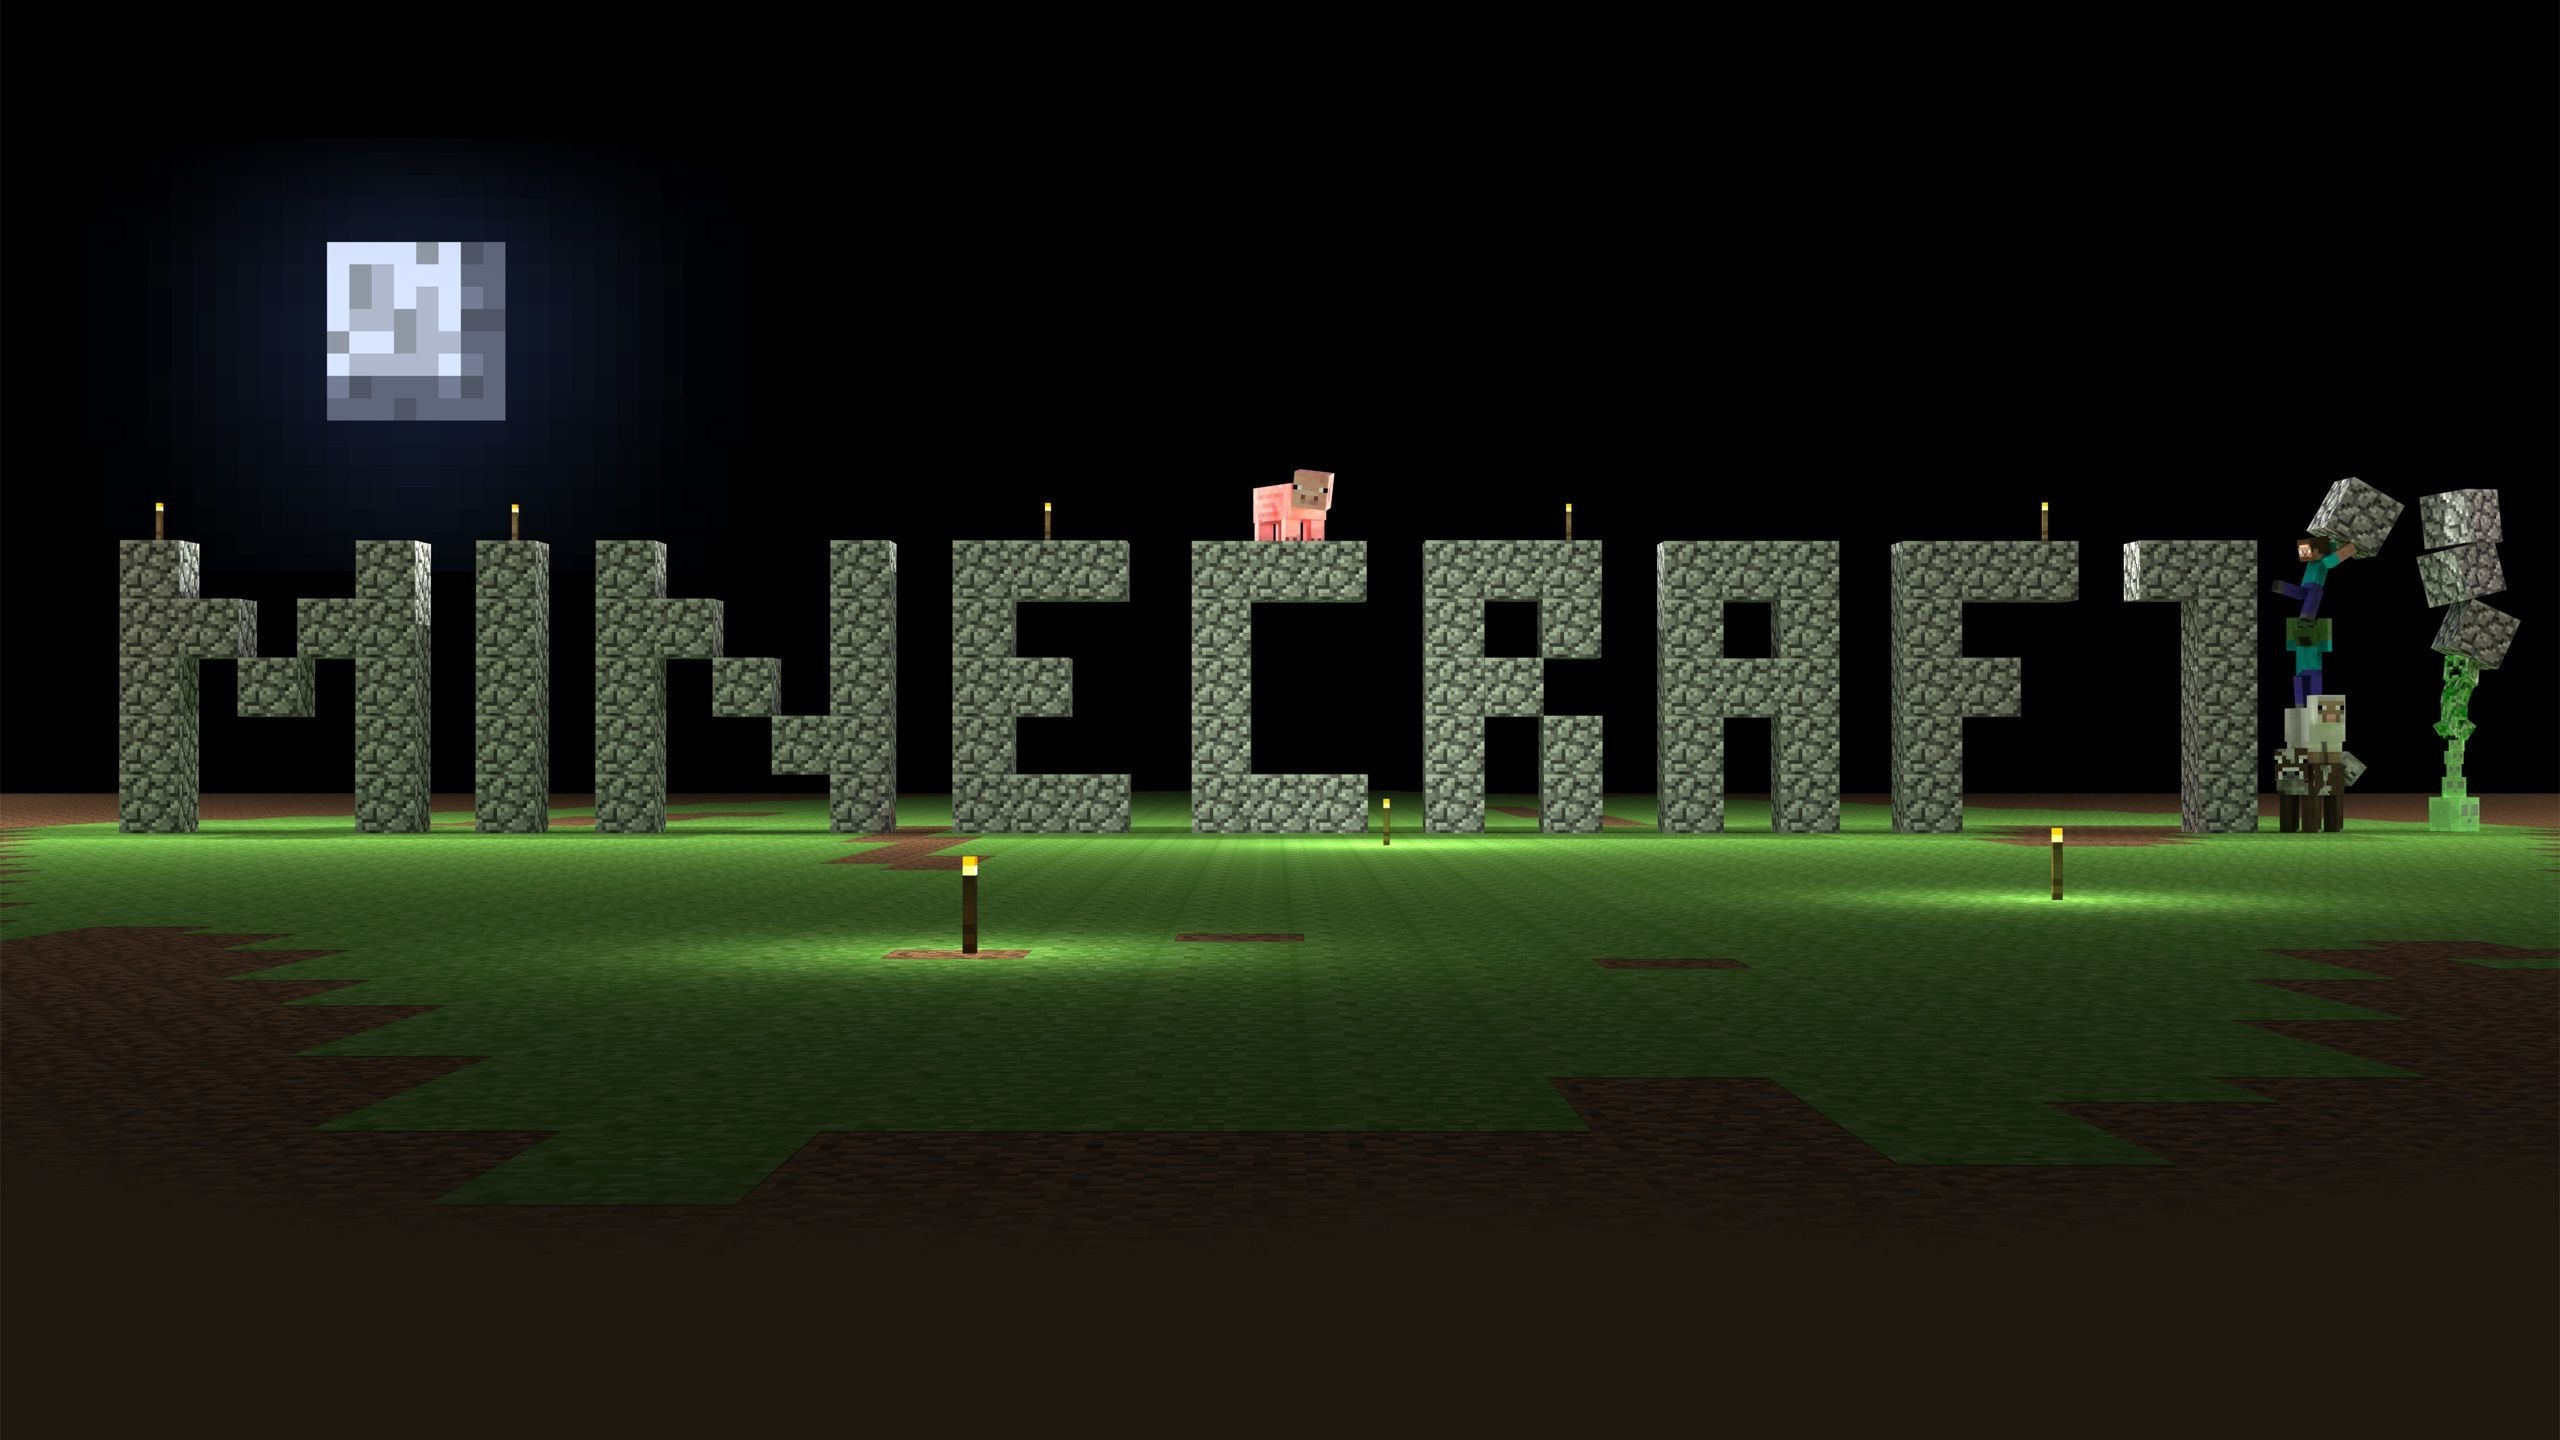 Minecraft Background 2560x1440 Posted By John Cunningham